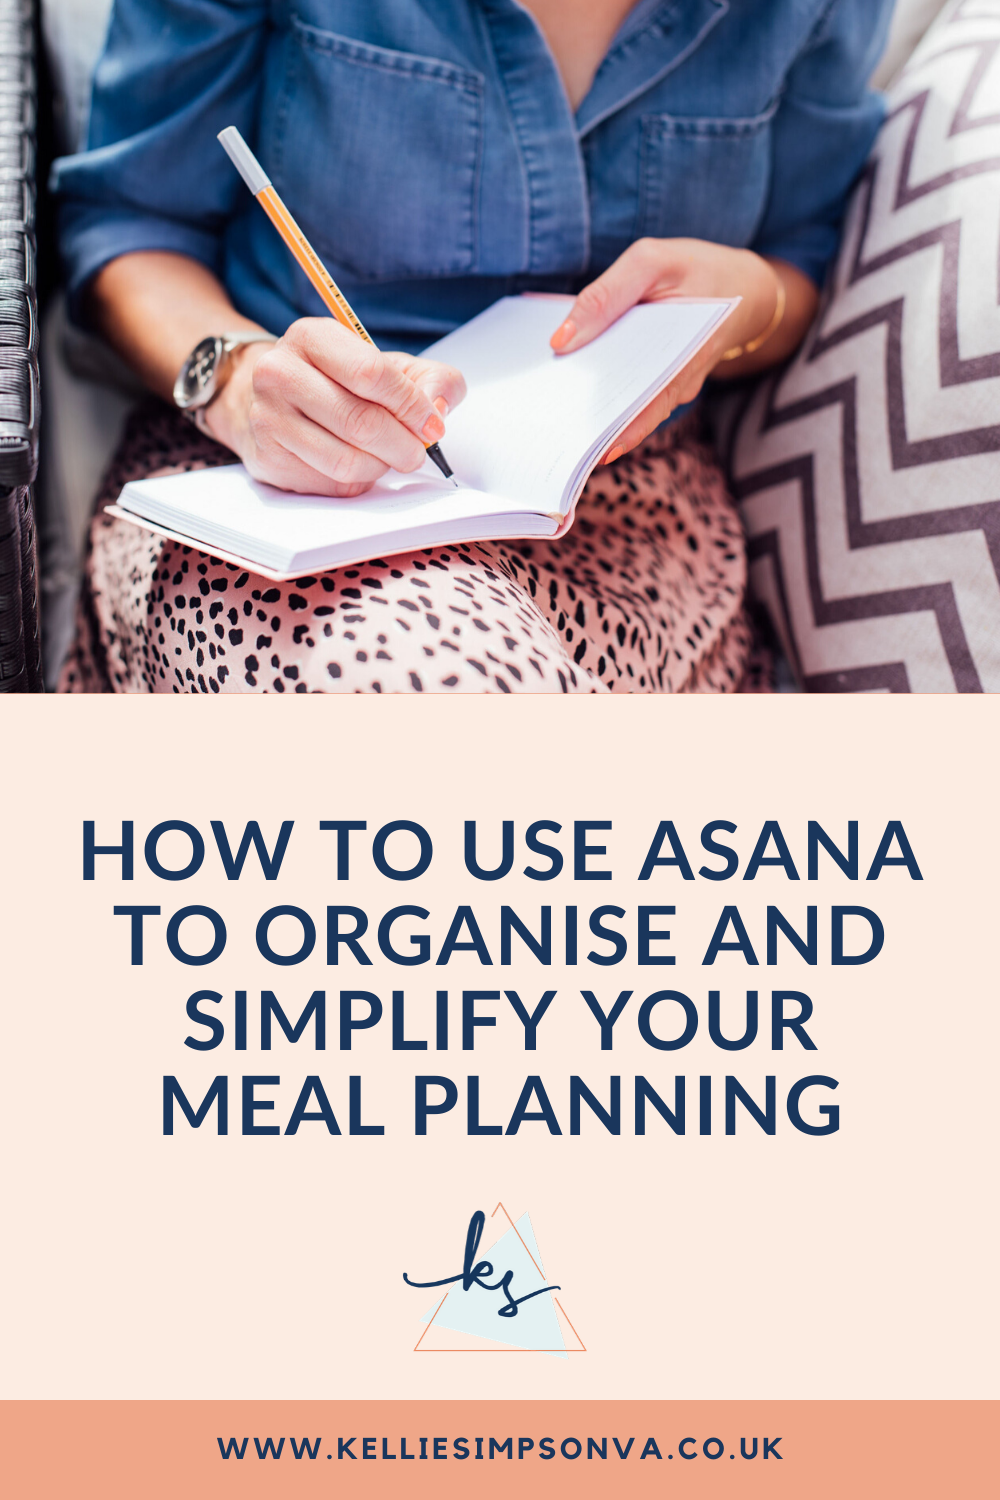 How to use Asana to organise and simplify your meal planning